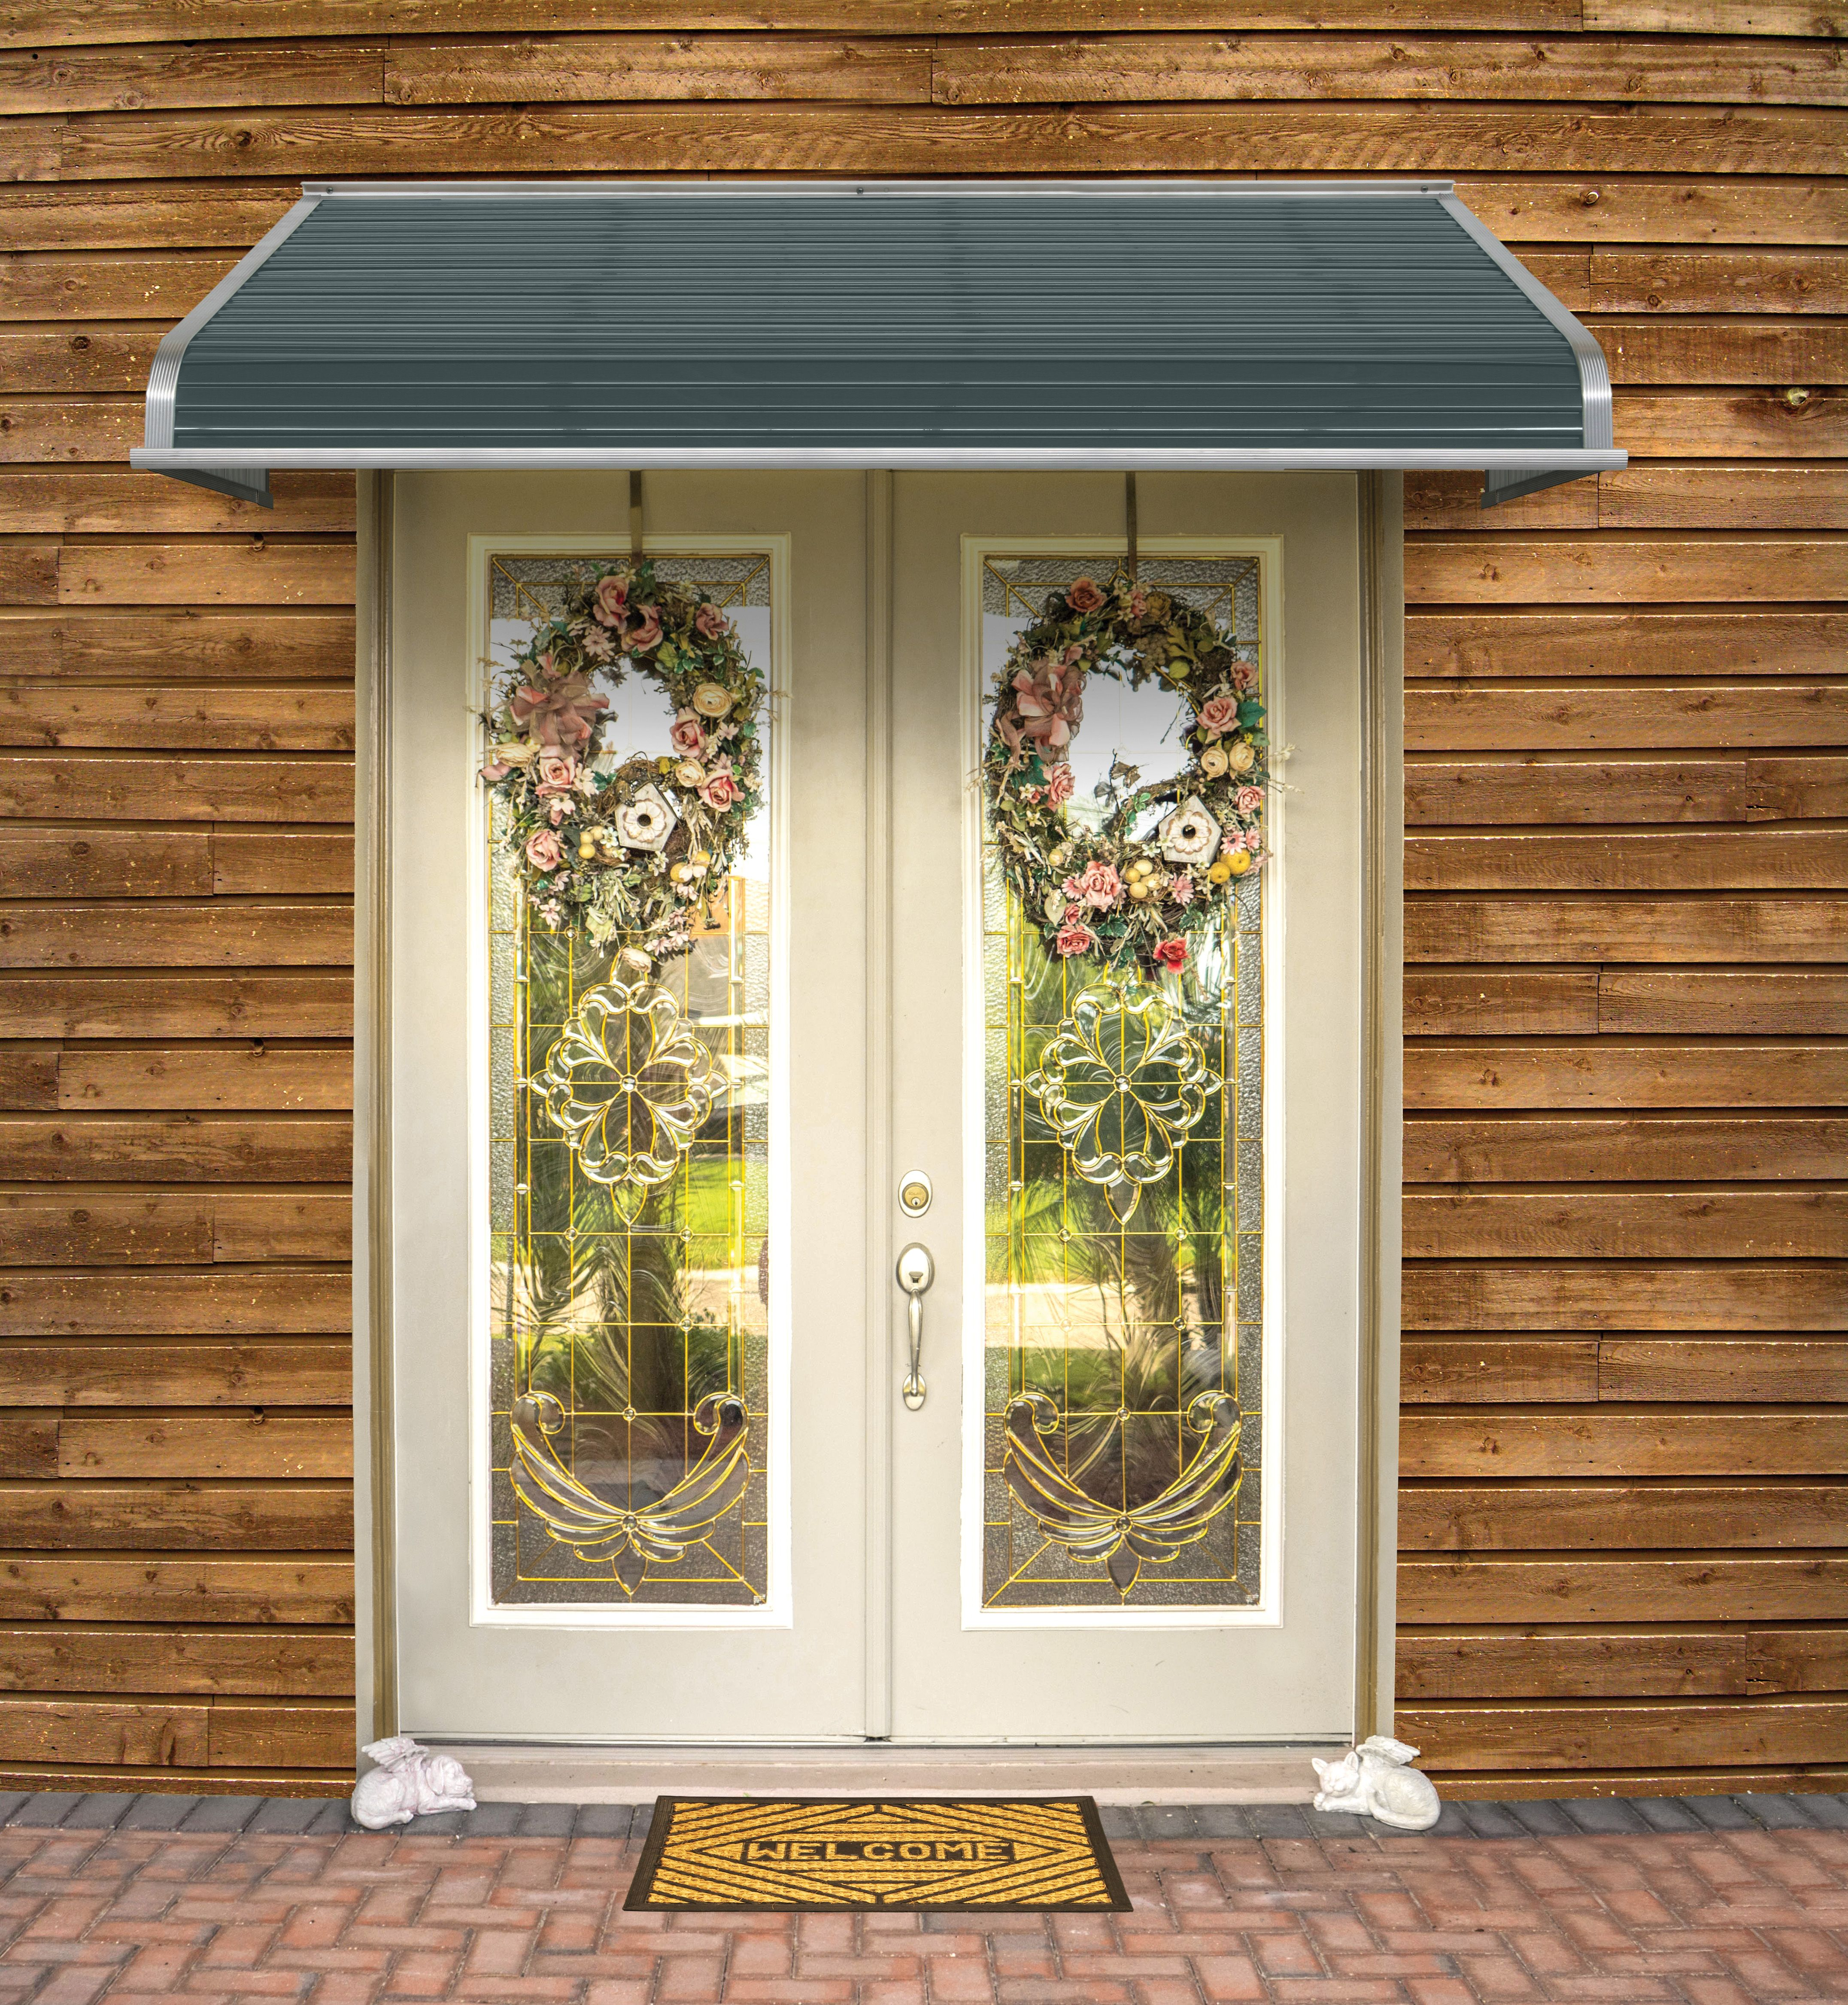 nantucket awnings of awning be dormer size can canopy nuimage fabric window a full door windows advantages andor great